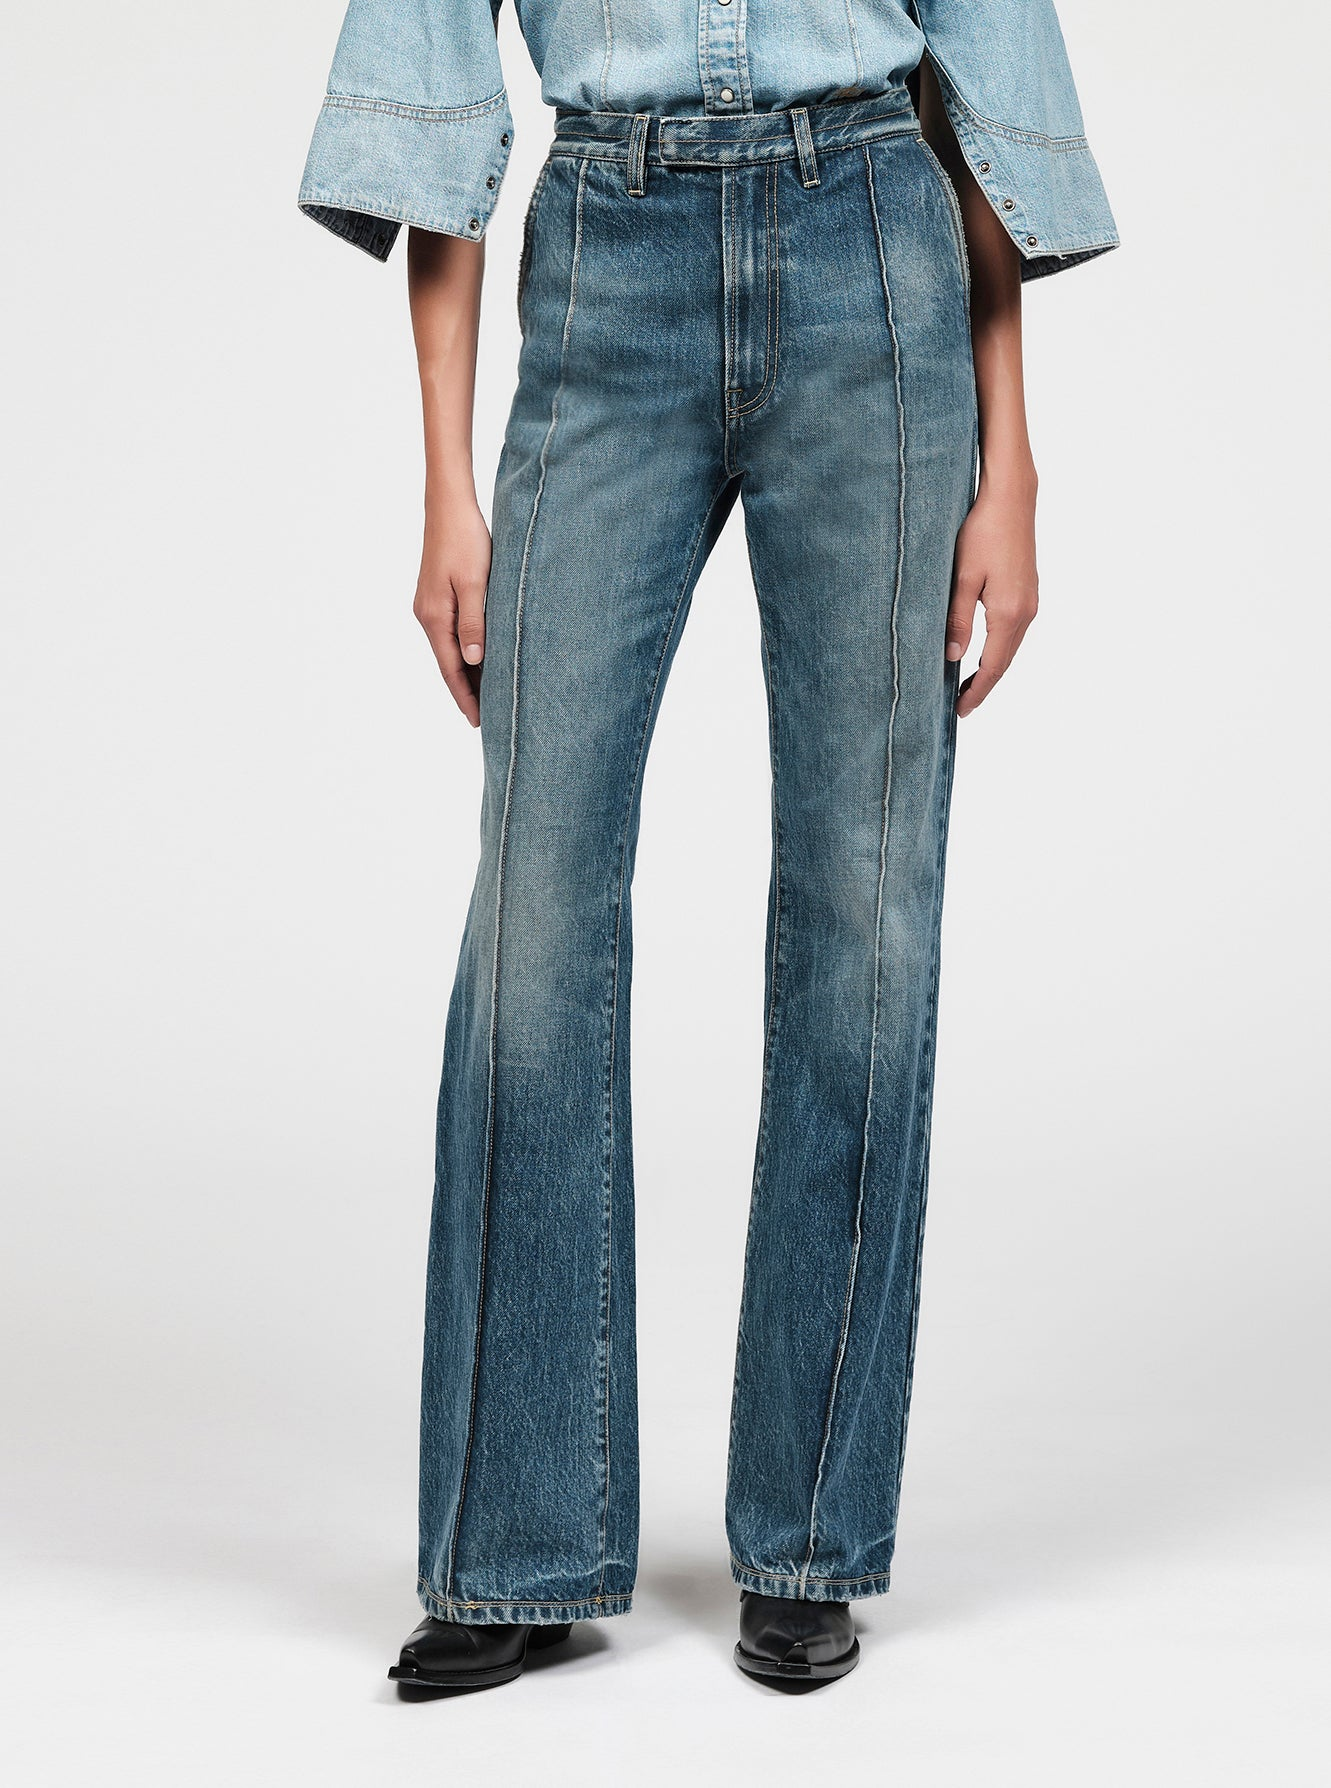 High rise washed denim jeans